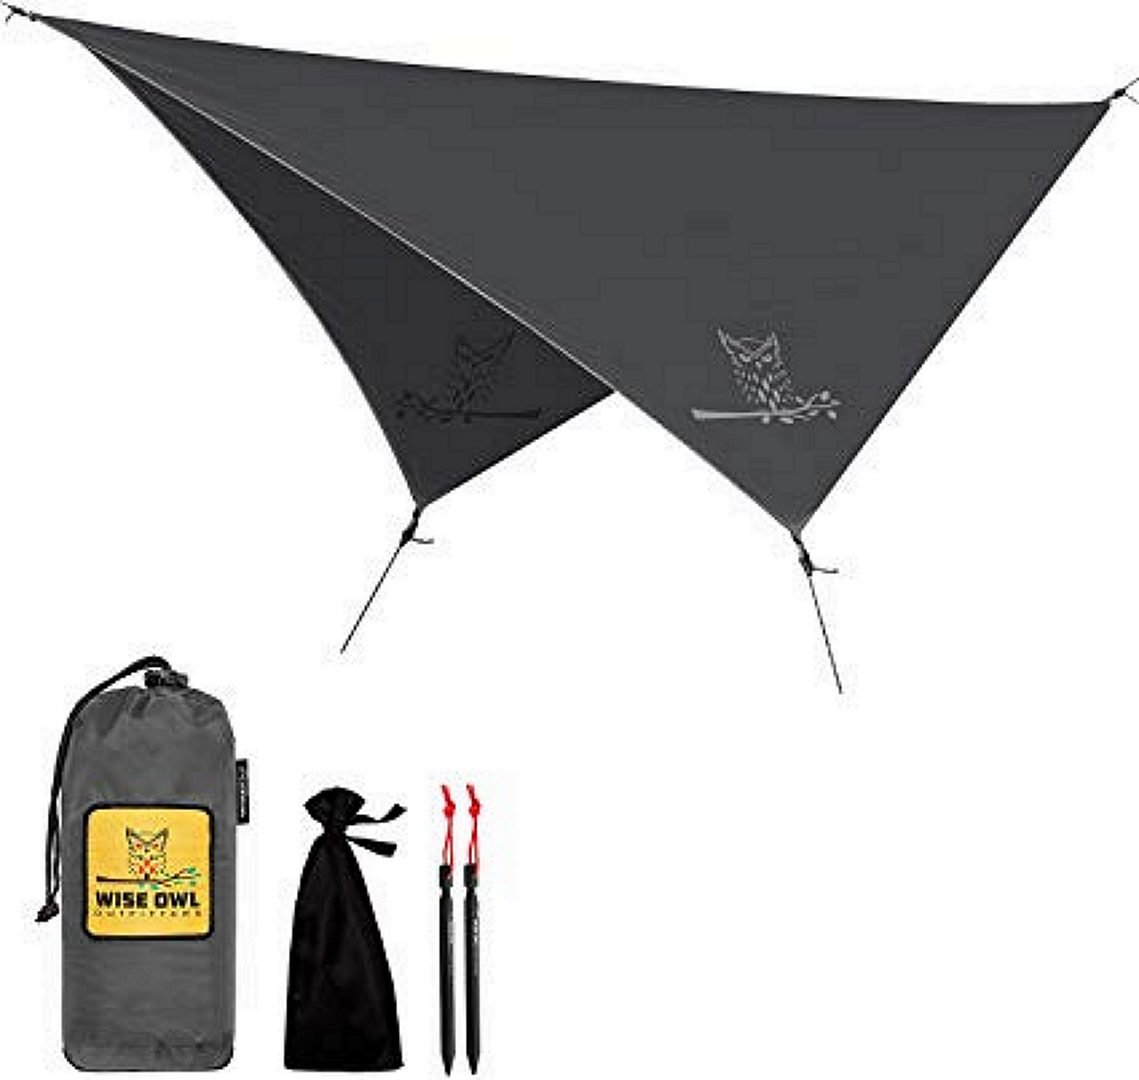 Wise Owl Outfitters Hammock Rain Fly, Black